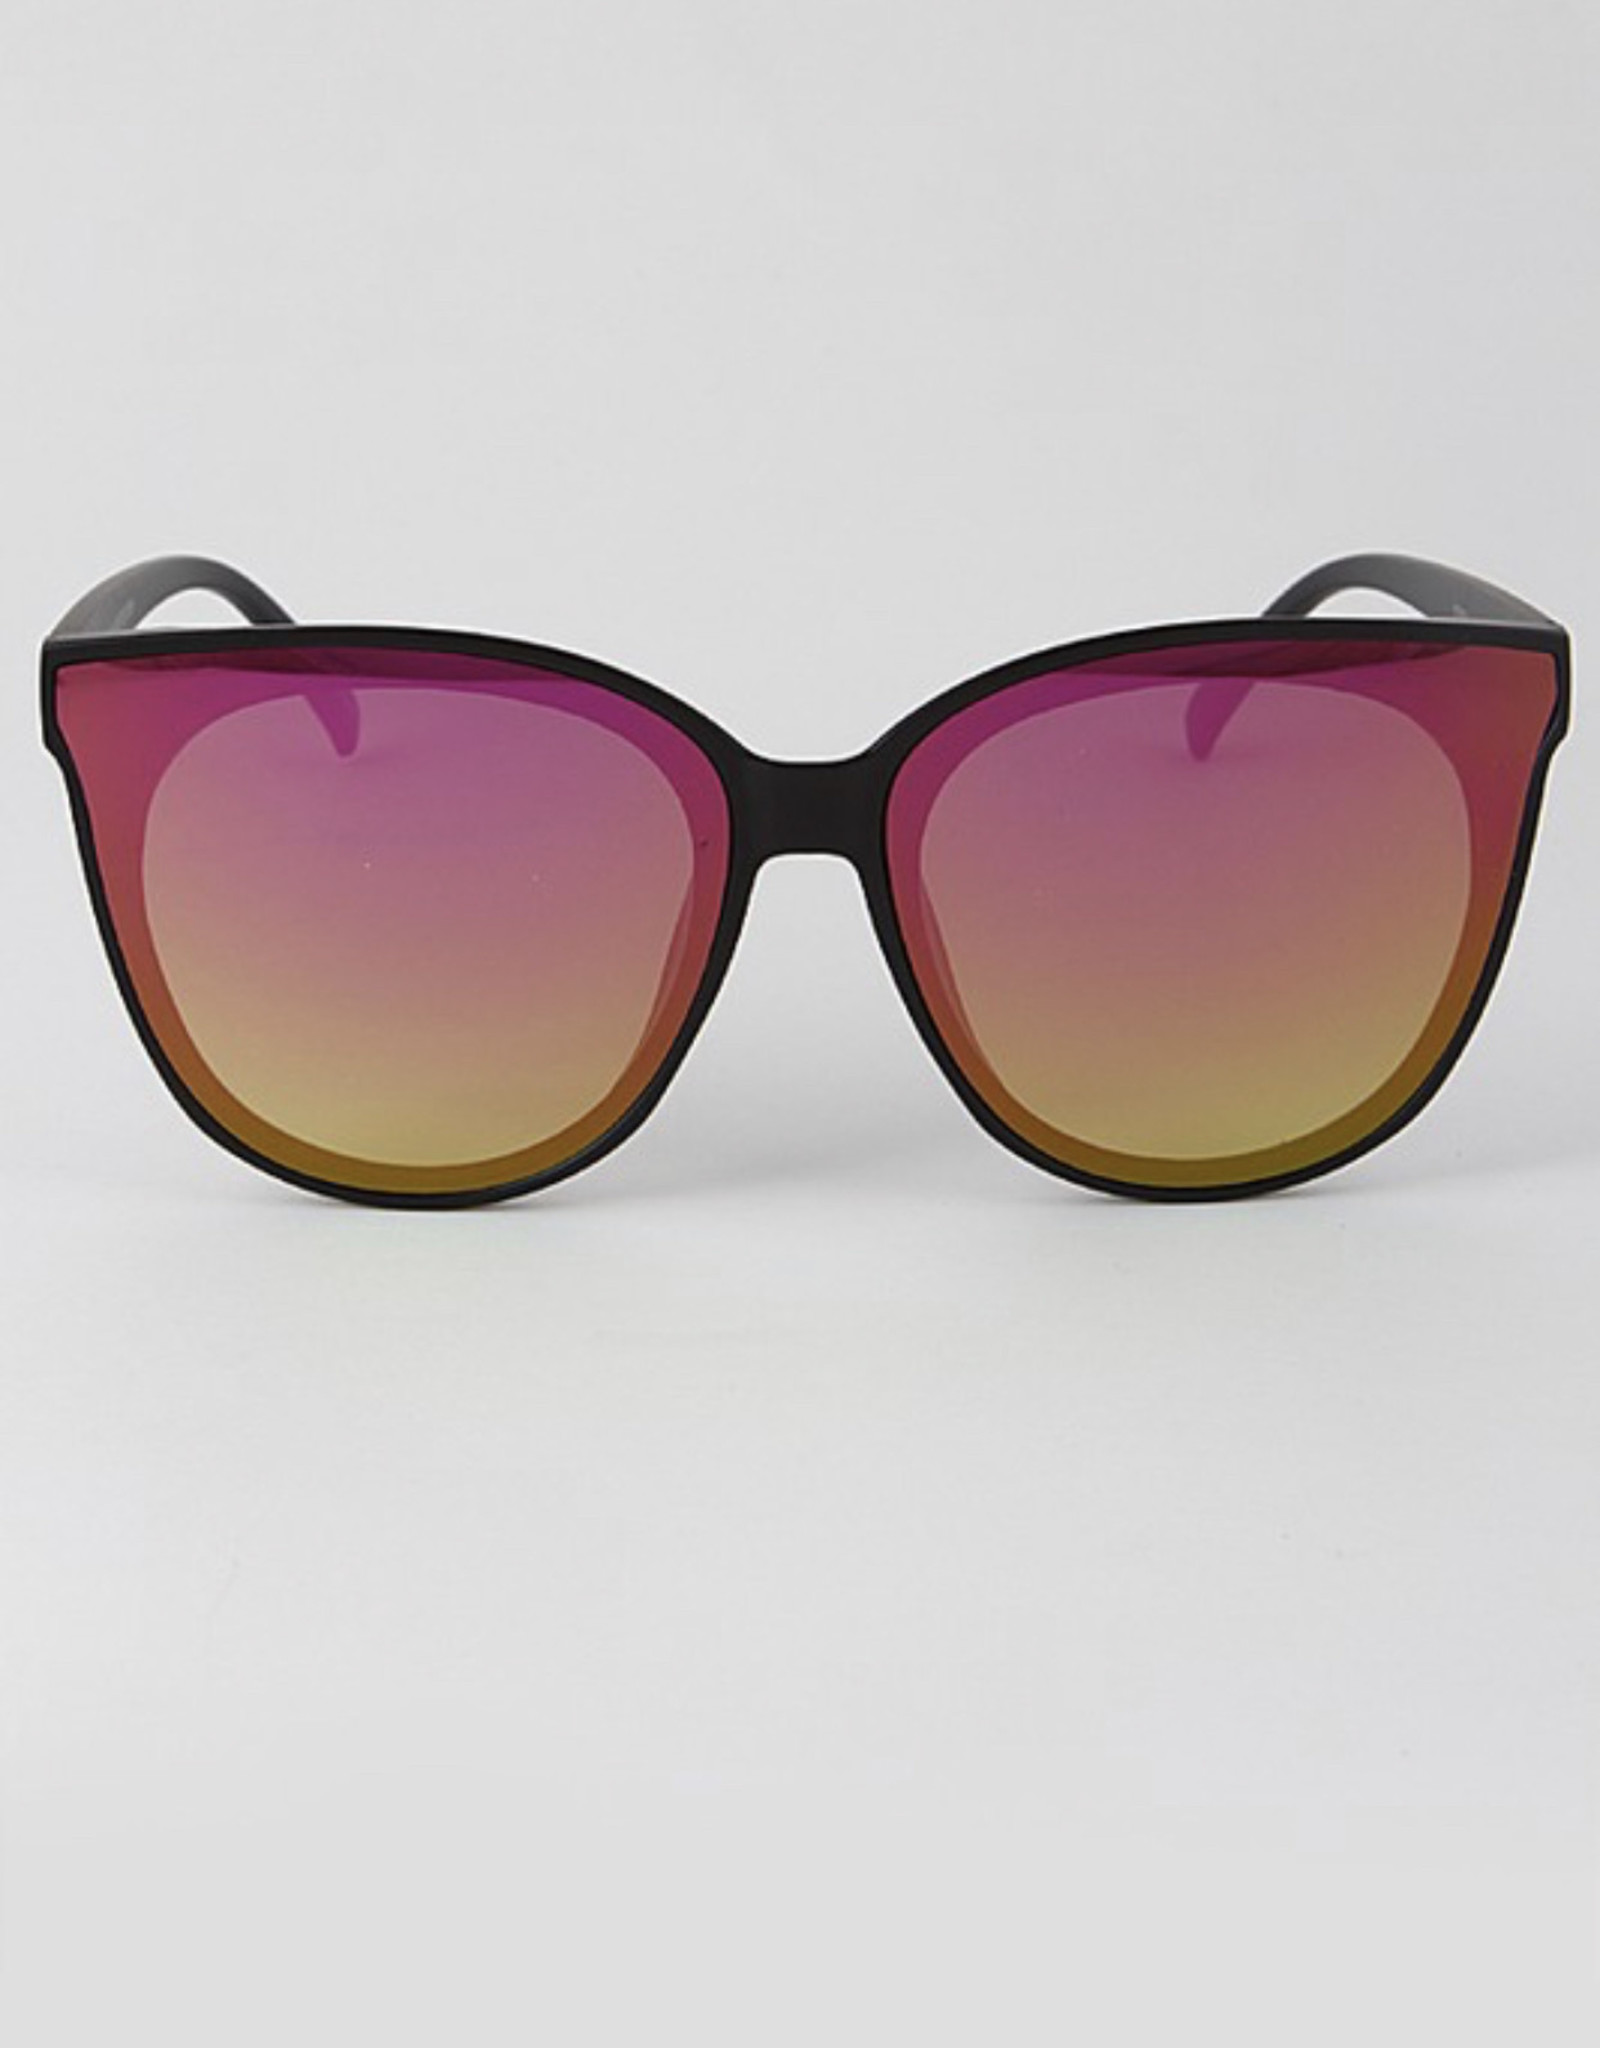 Sunglasses Fashion Framed Sunglasses